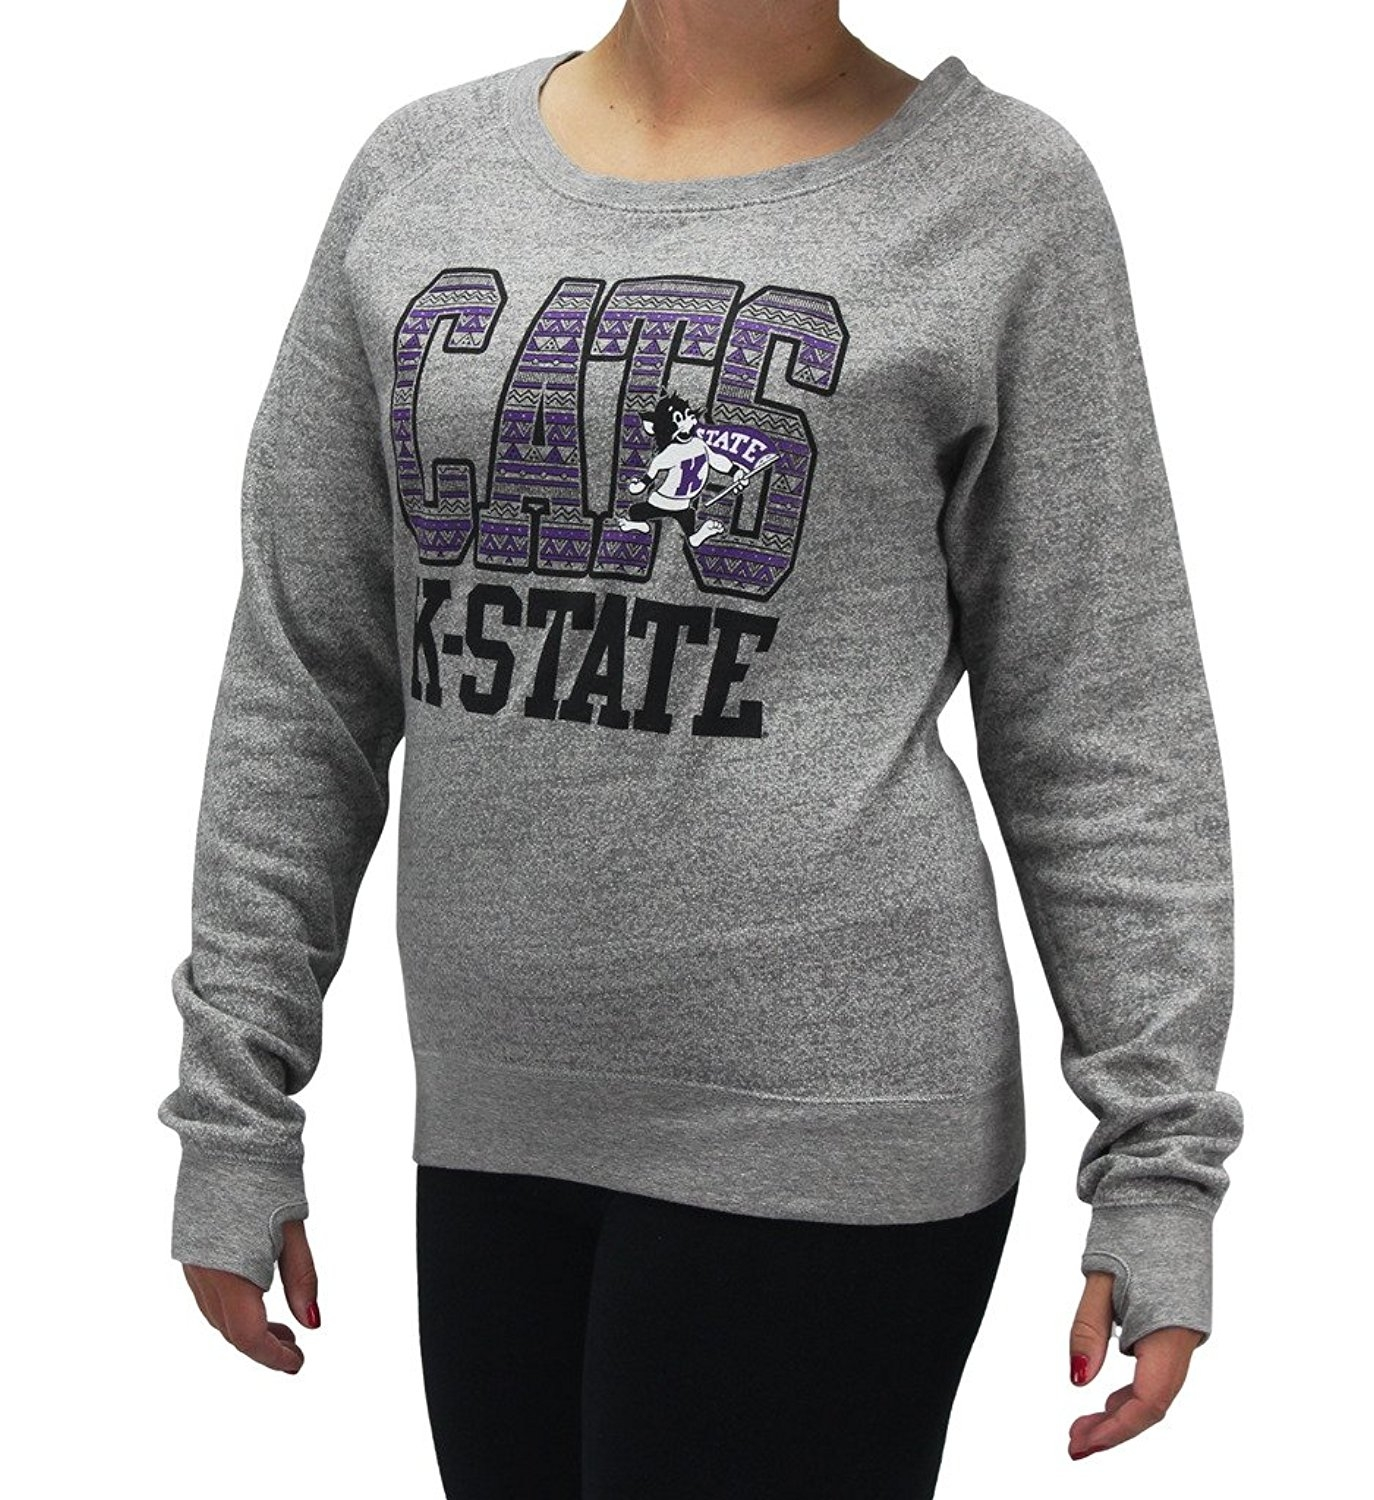 Pressbox Women' s Kansas Wildcats Grey Aztec Sweater Shirt